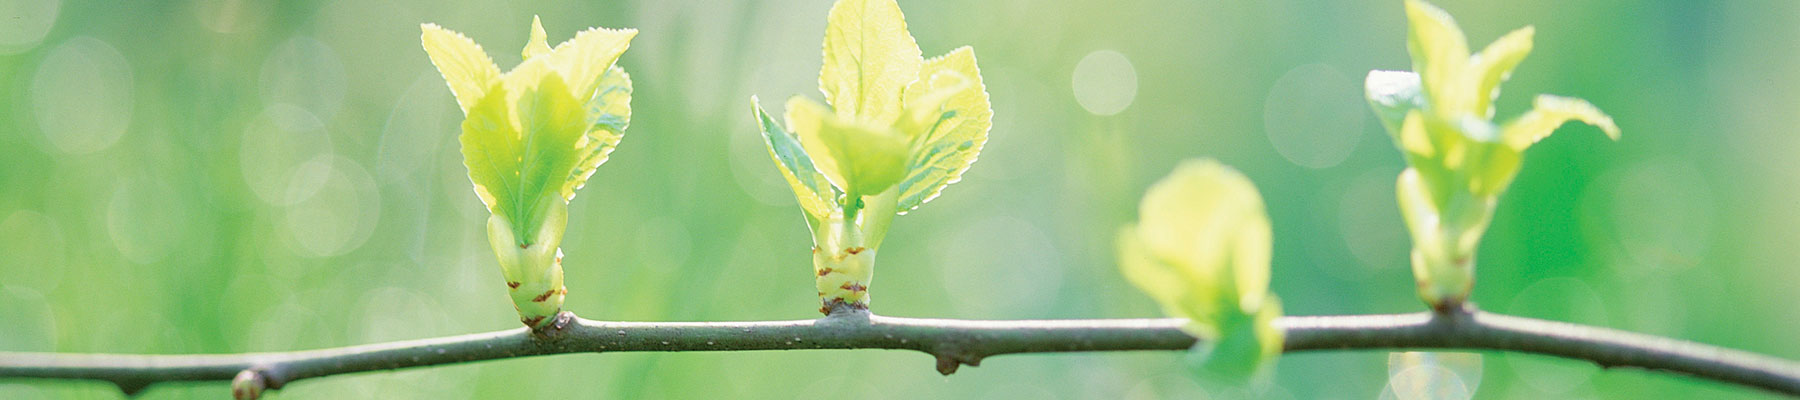 Image of small leaf buds on a tree branch